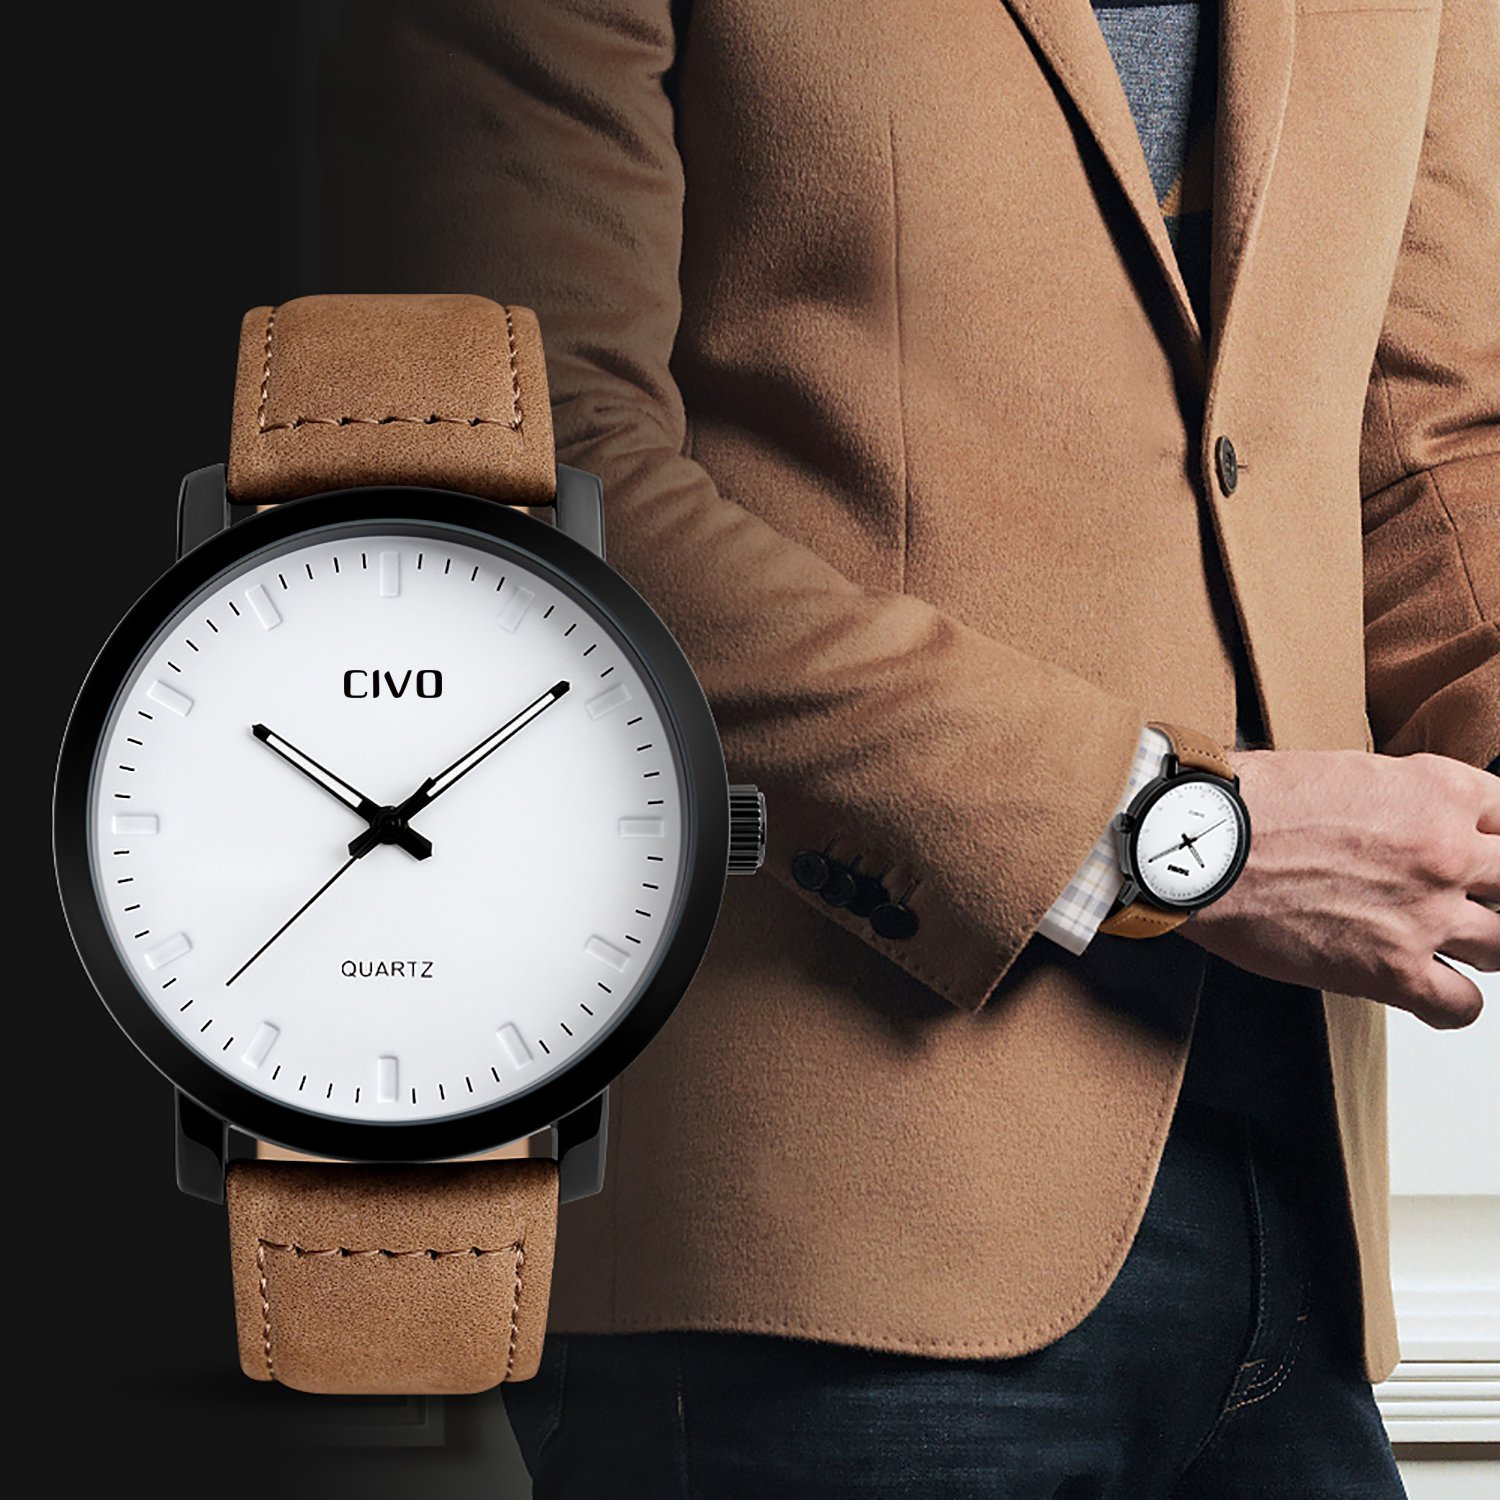 bracelet eyki male strap shock mens real my niche s homme men vigour business casual montre leather fashion watches deals new products dropship quartz